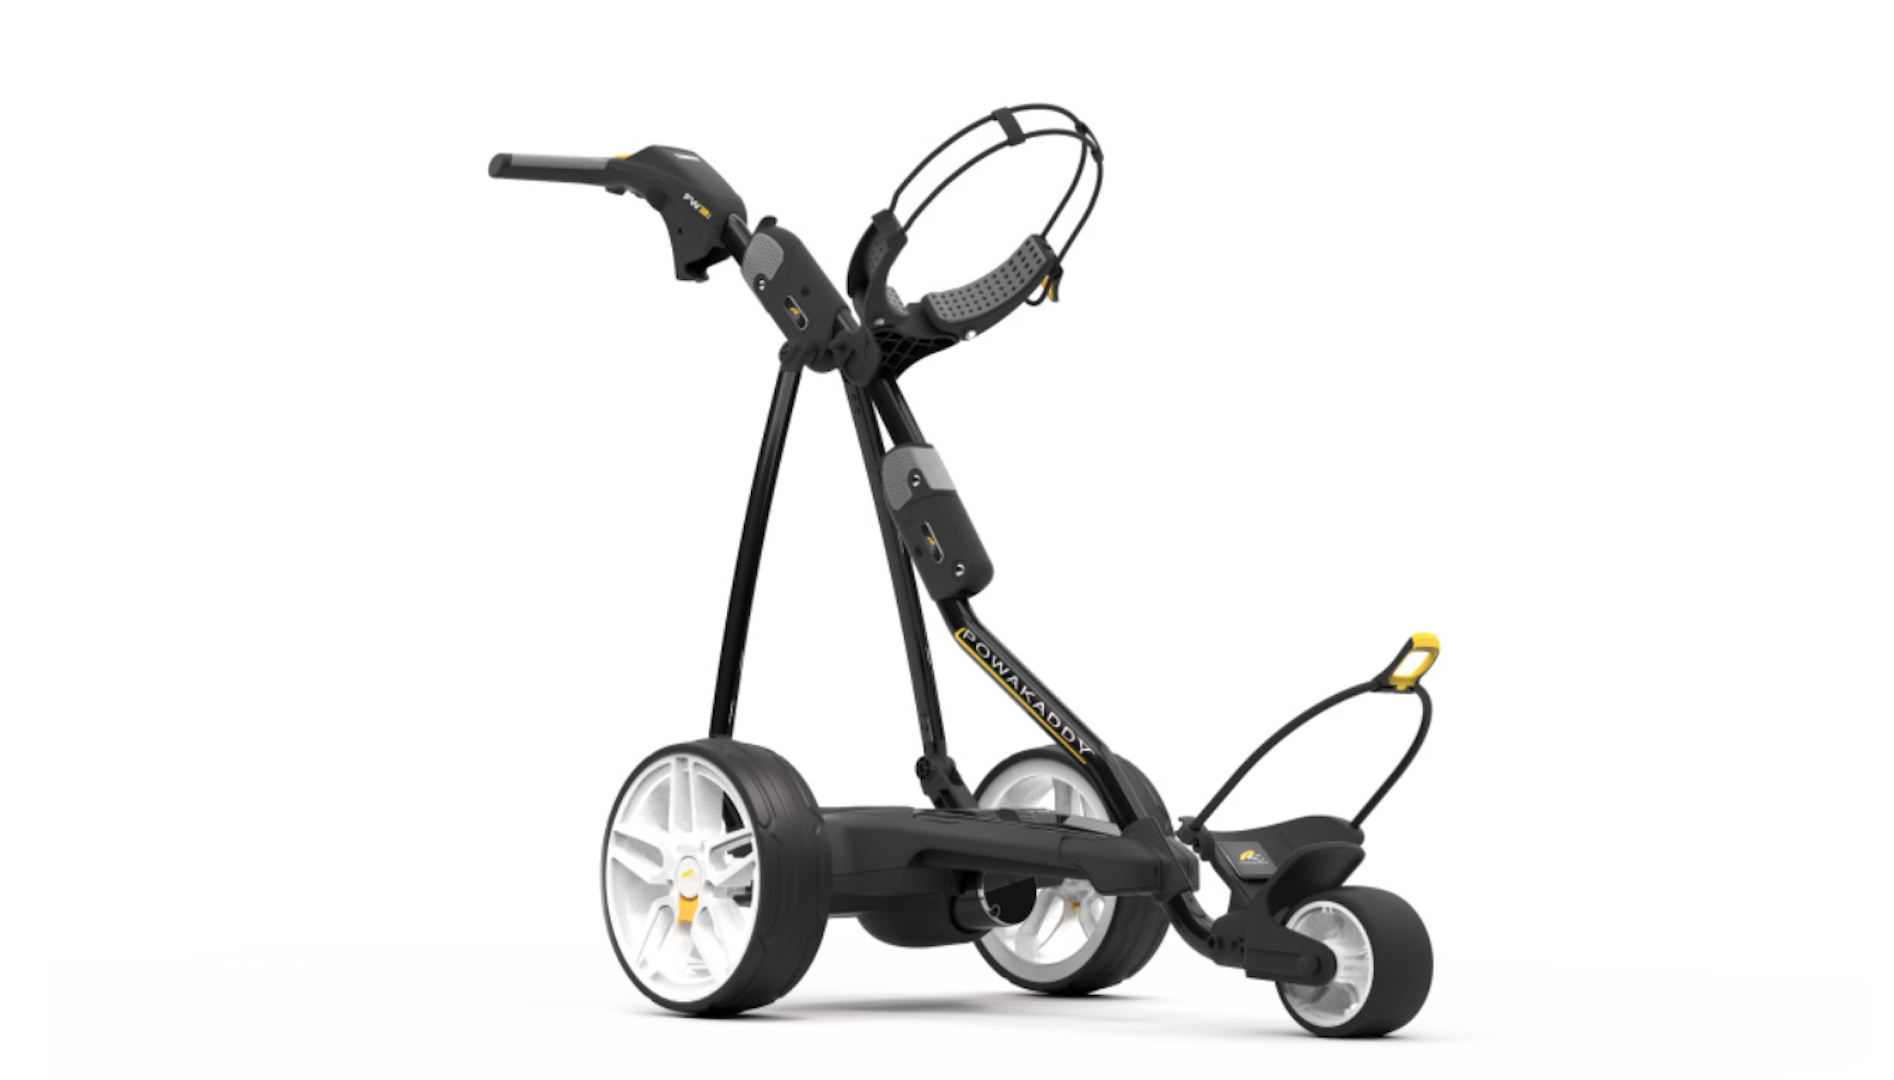 Powakaddy upgrades Freeway trolley range